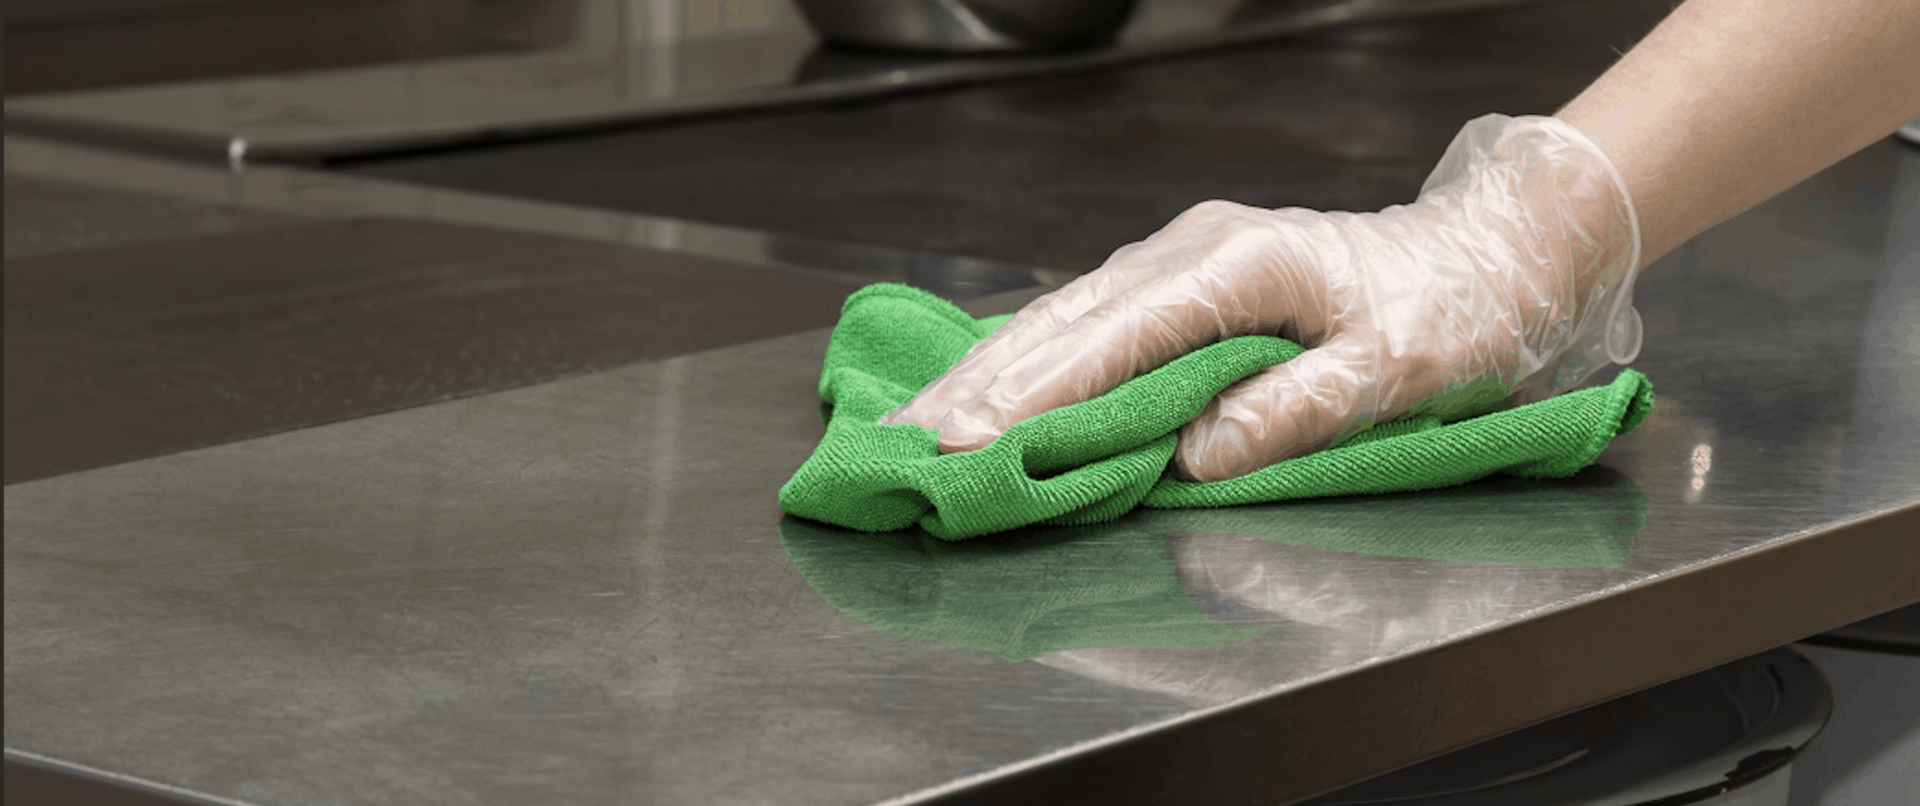 Using A Professionally Accredited Company For Your Commercial Cleaning